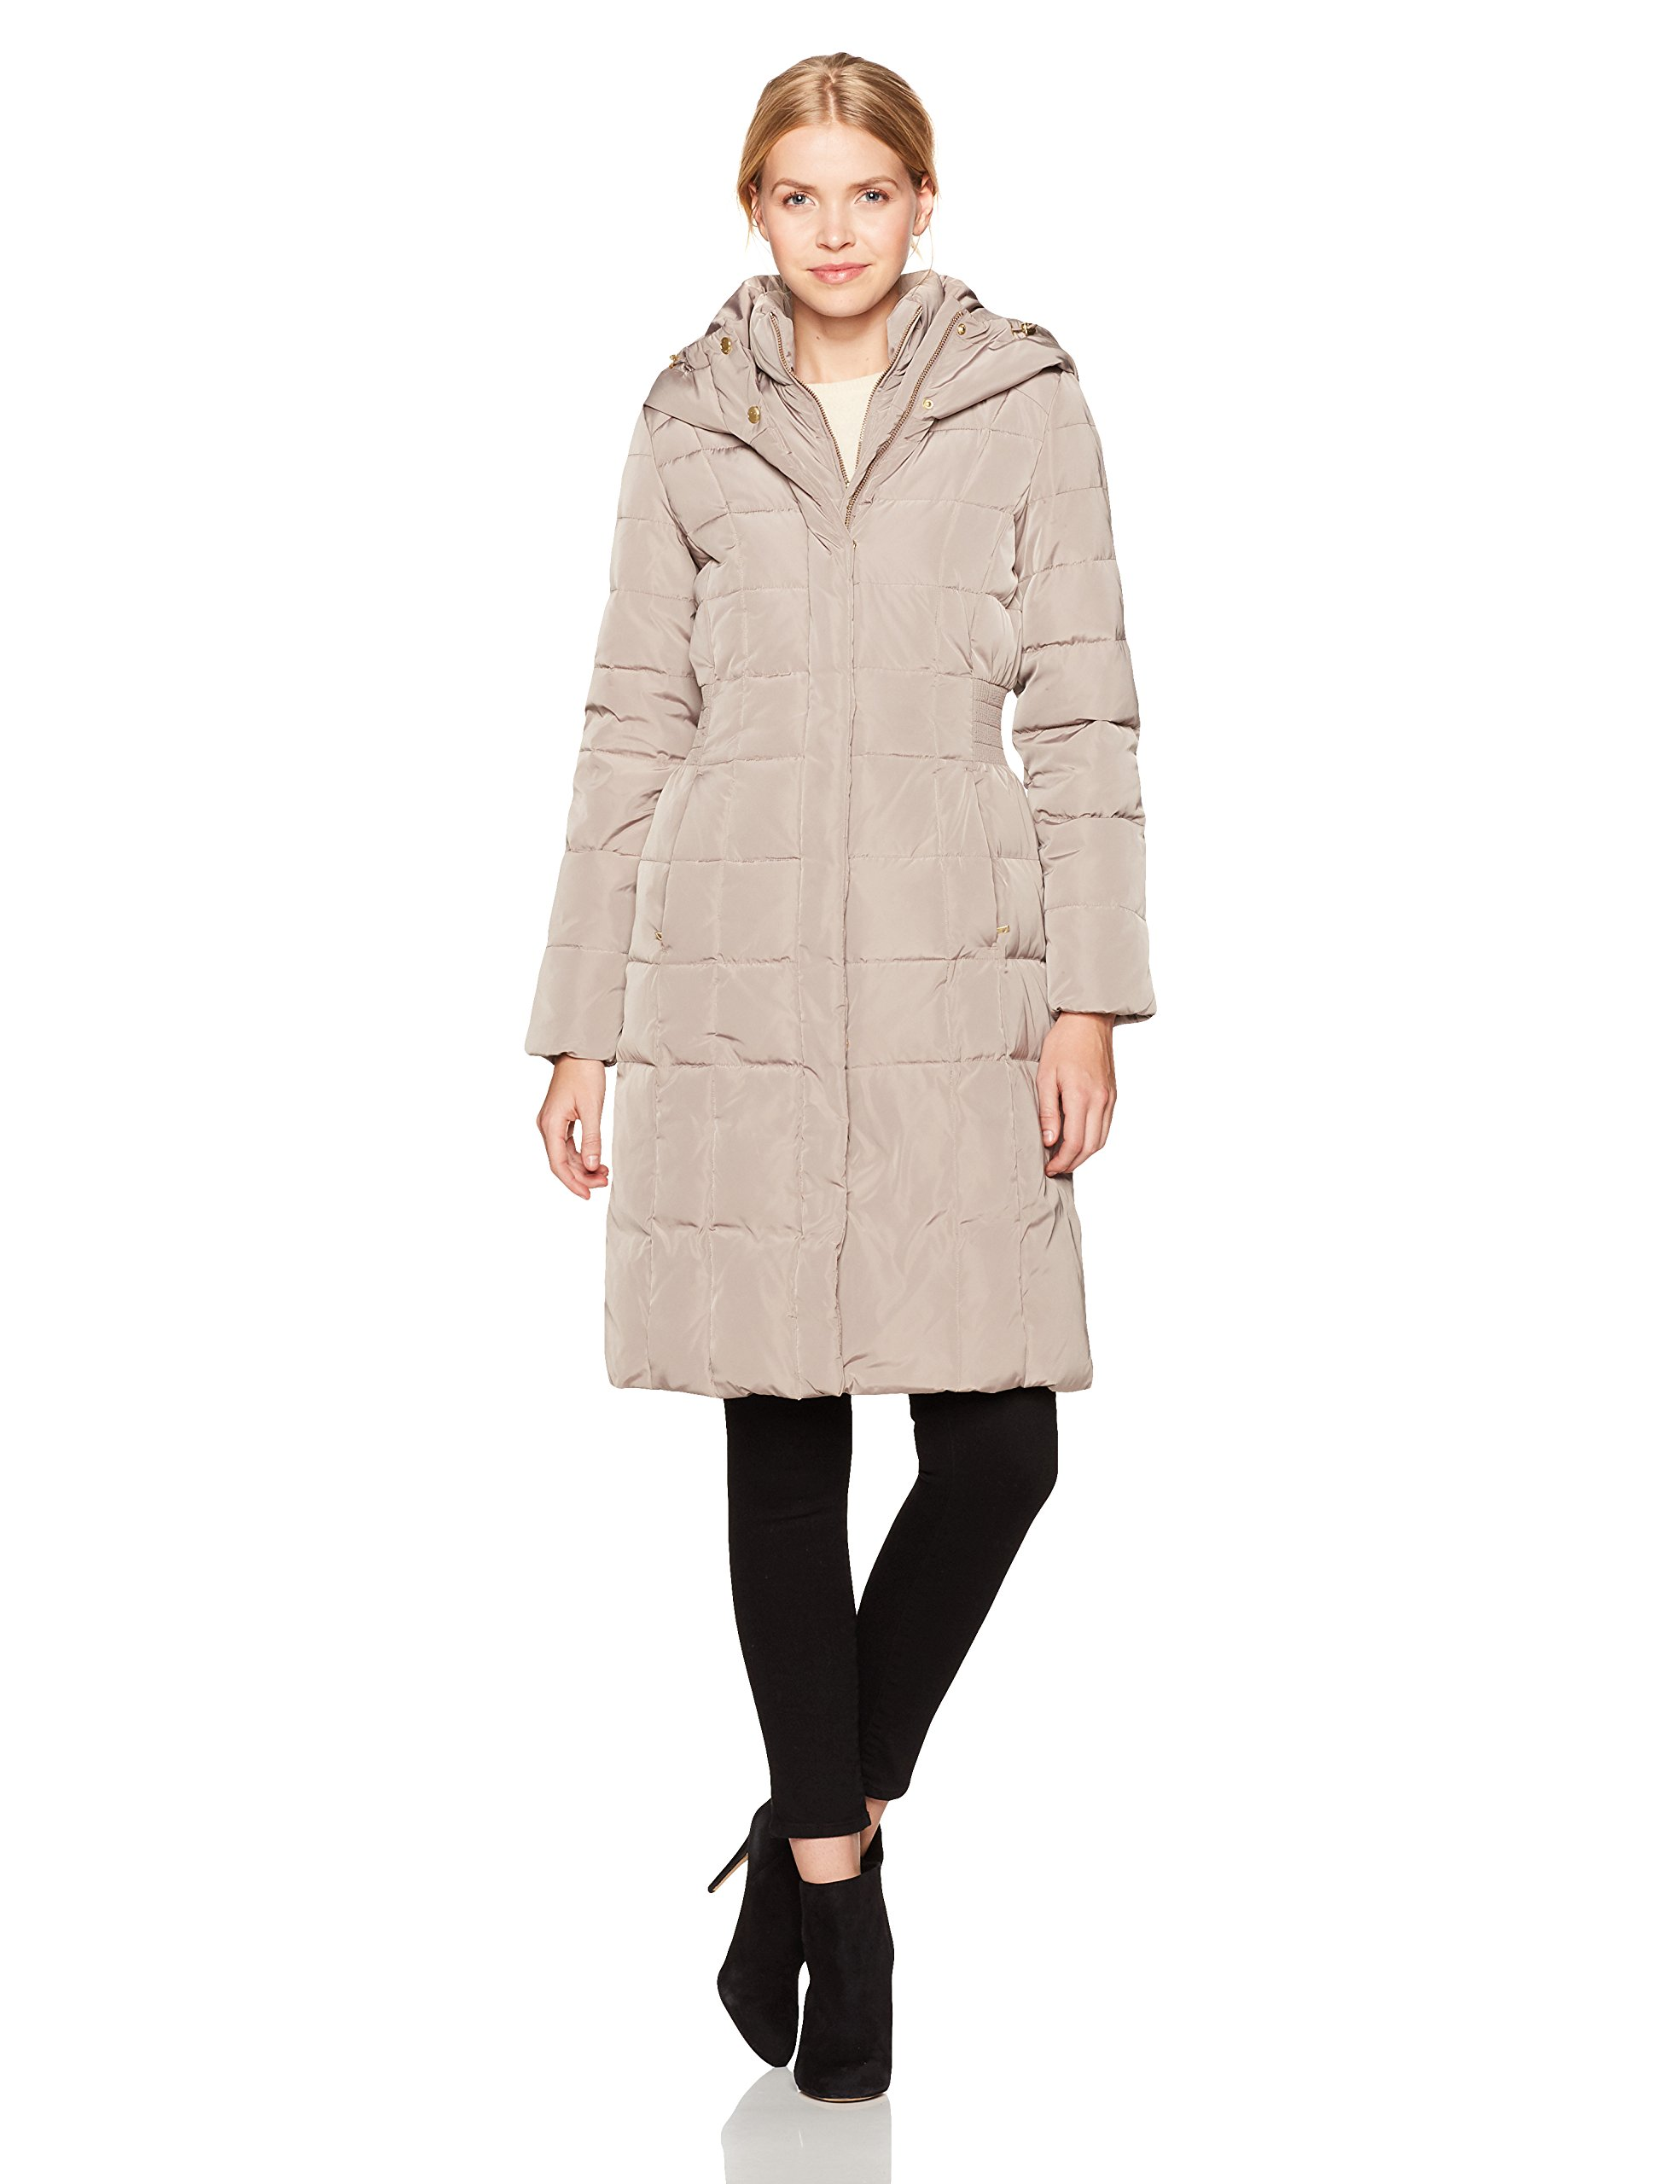 Cole Haan Women's Taffeta Quilted Down Coat with Elasticated Side Waist Detail, Cashew, S